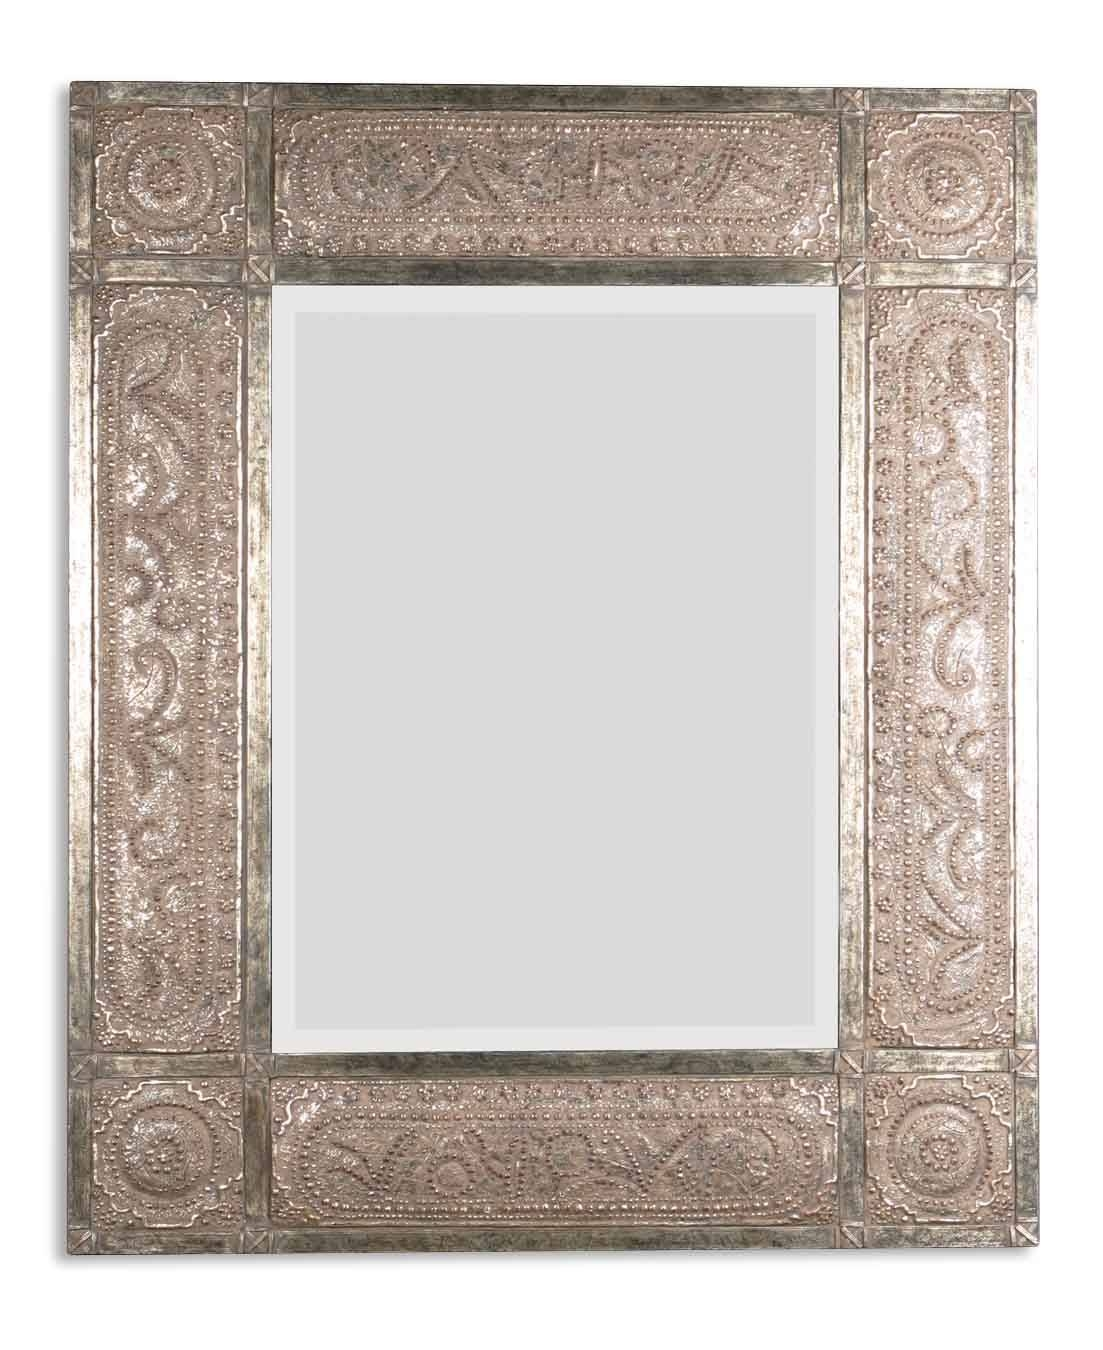 Uttermost Harvest Serenity Champagne Gold Mirror 11602 B intended for Champagne Mirrors (Image 23 of 25)